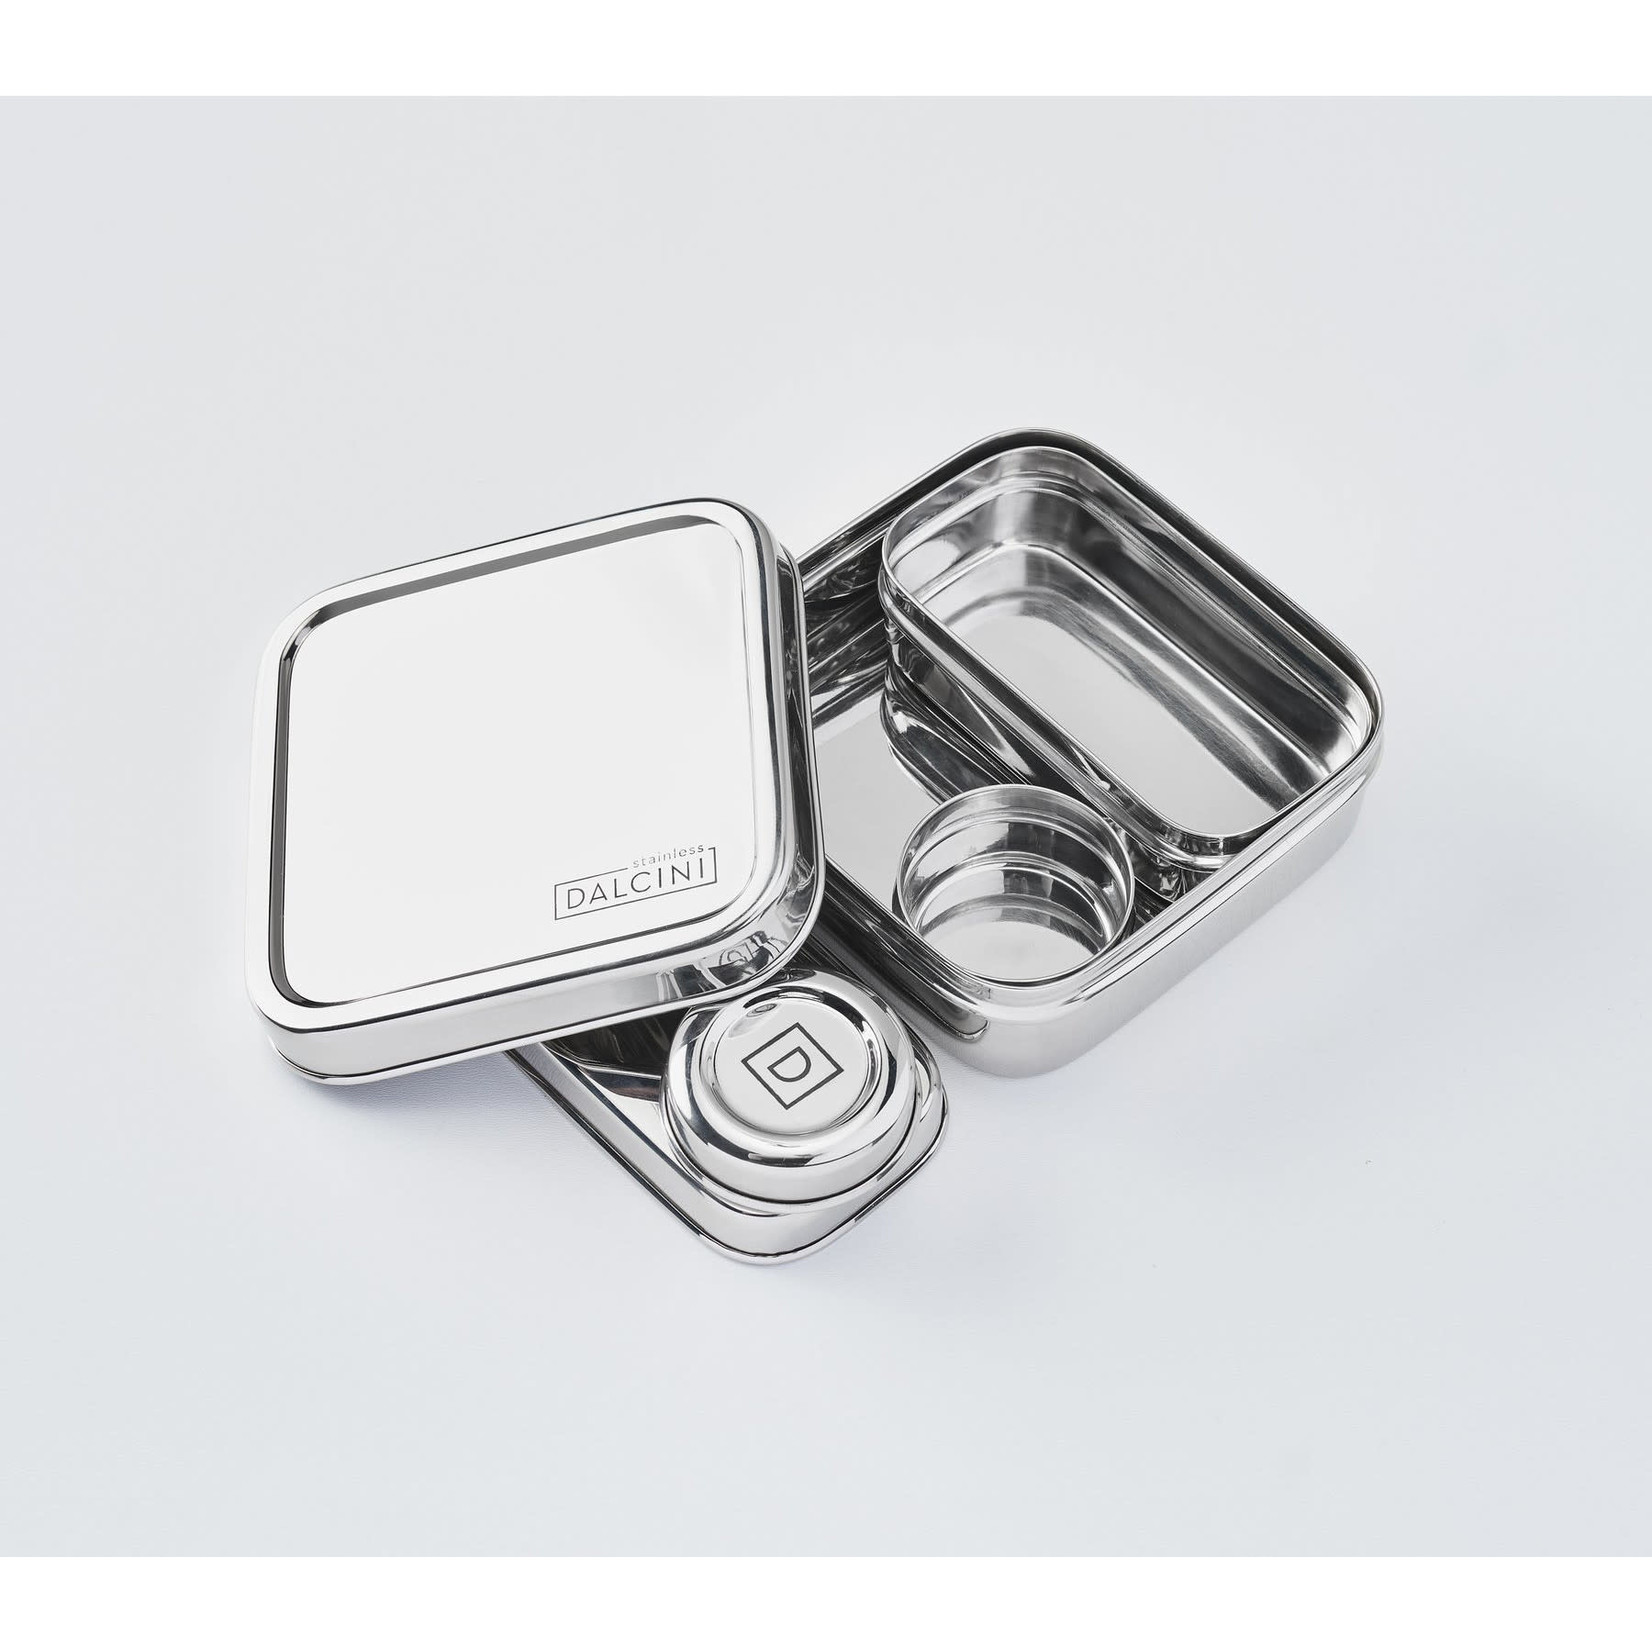 DALCINI STAINLESS LITTLE LUNCH COMBO